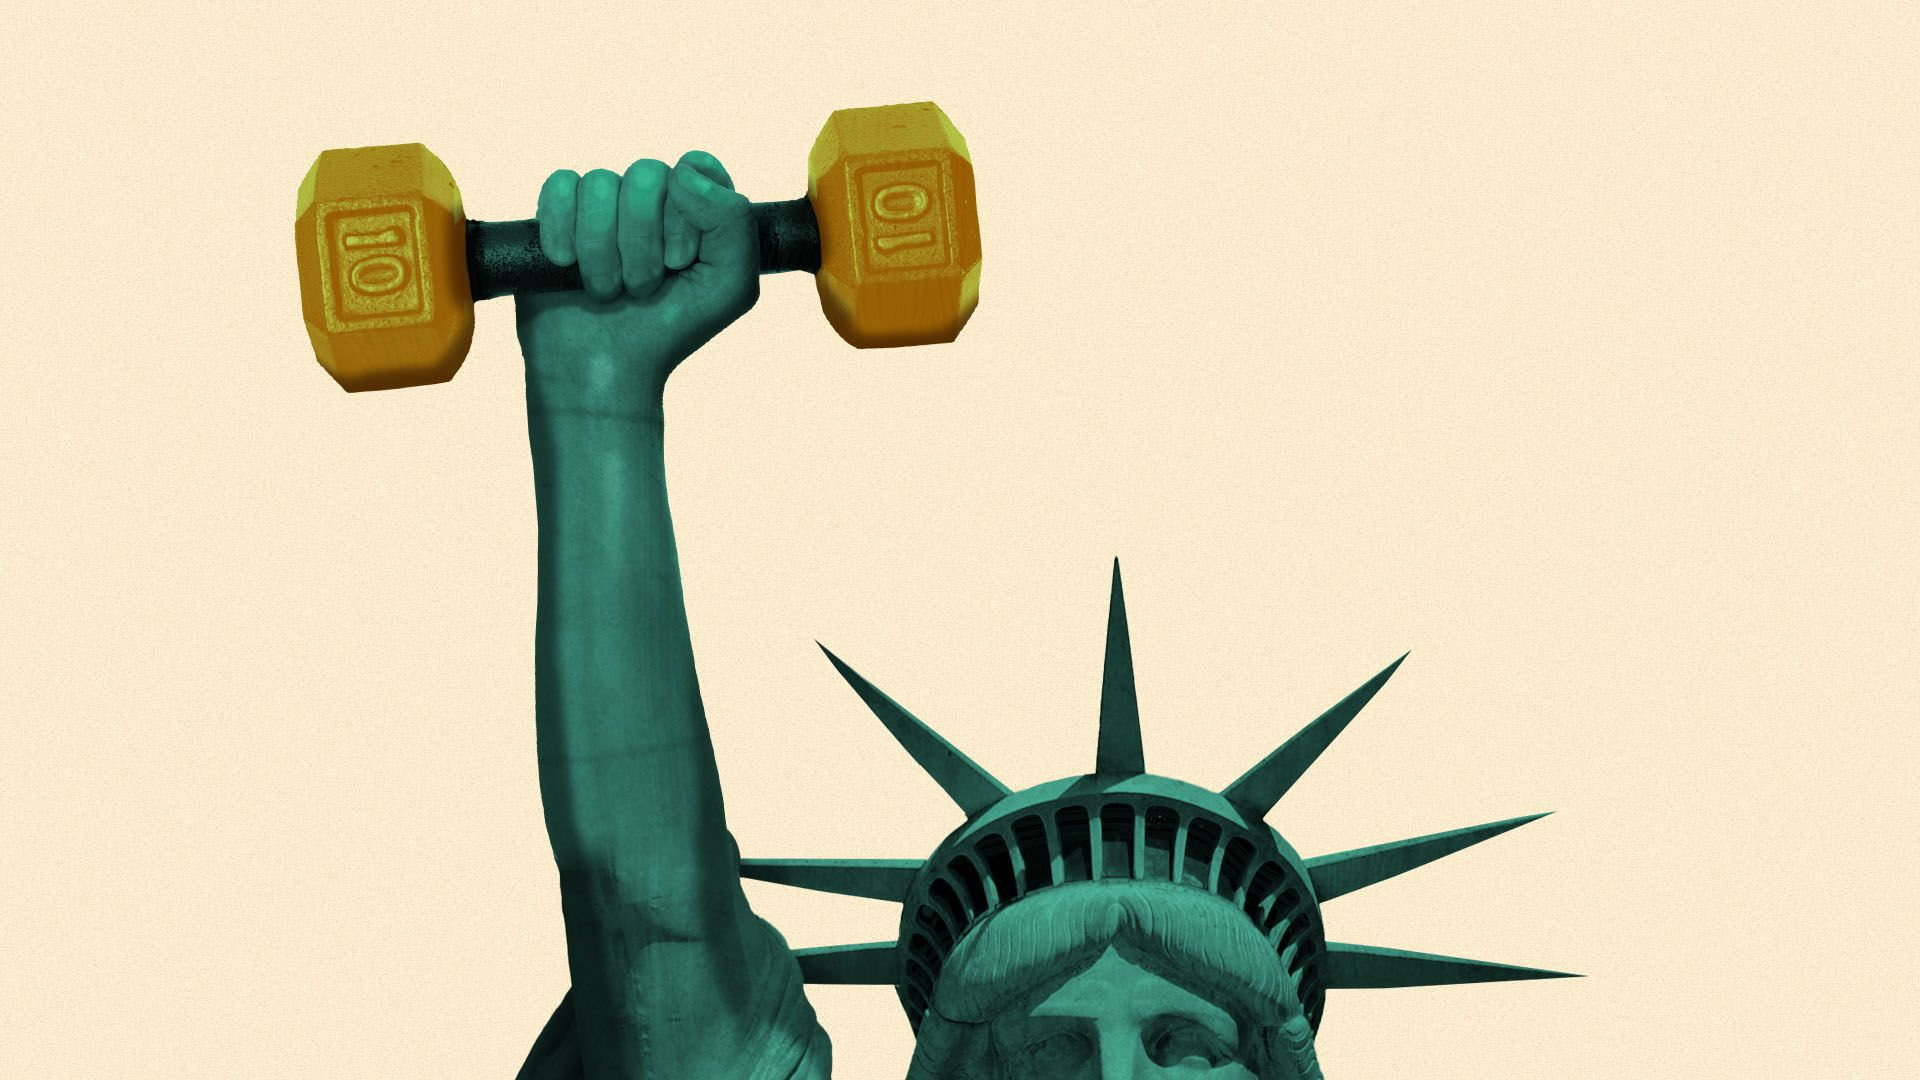 Illustration of the statue of liberty holding a dumbbell